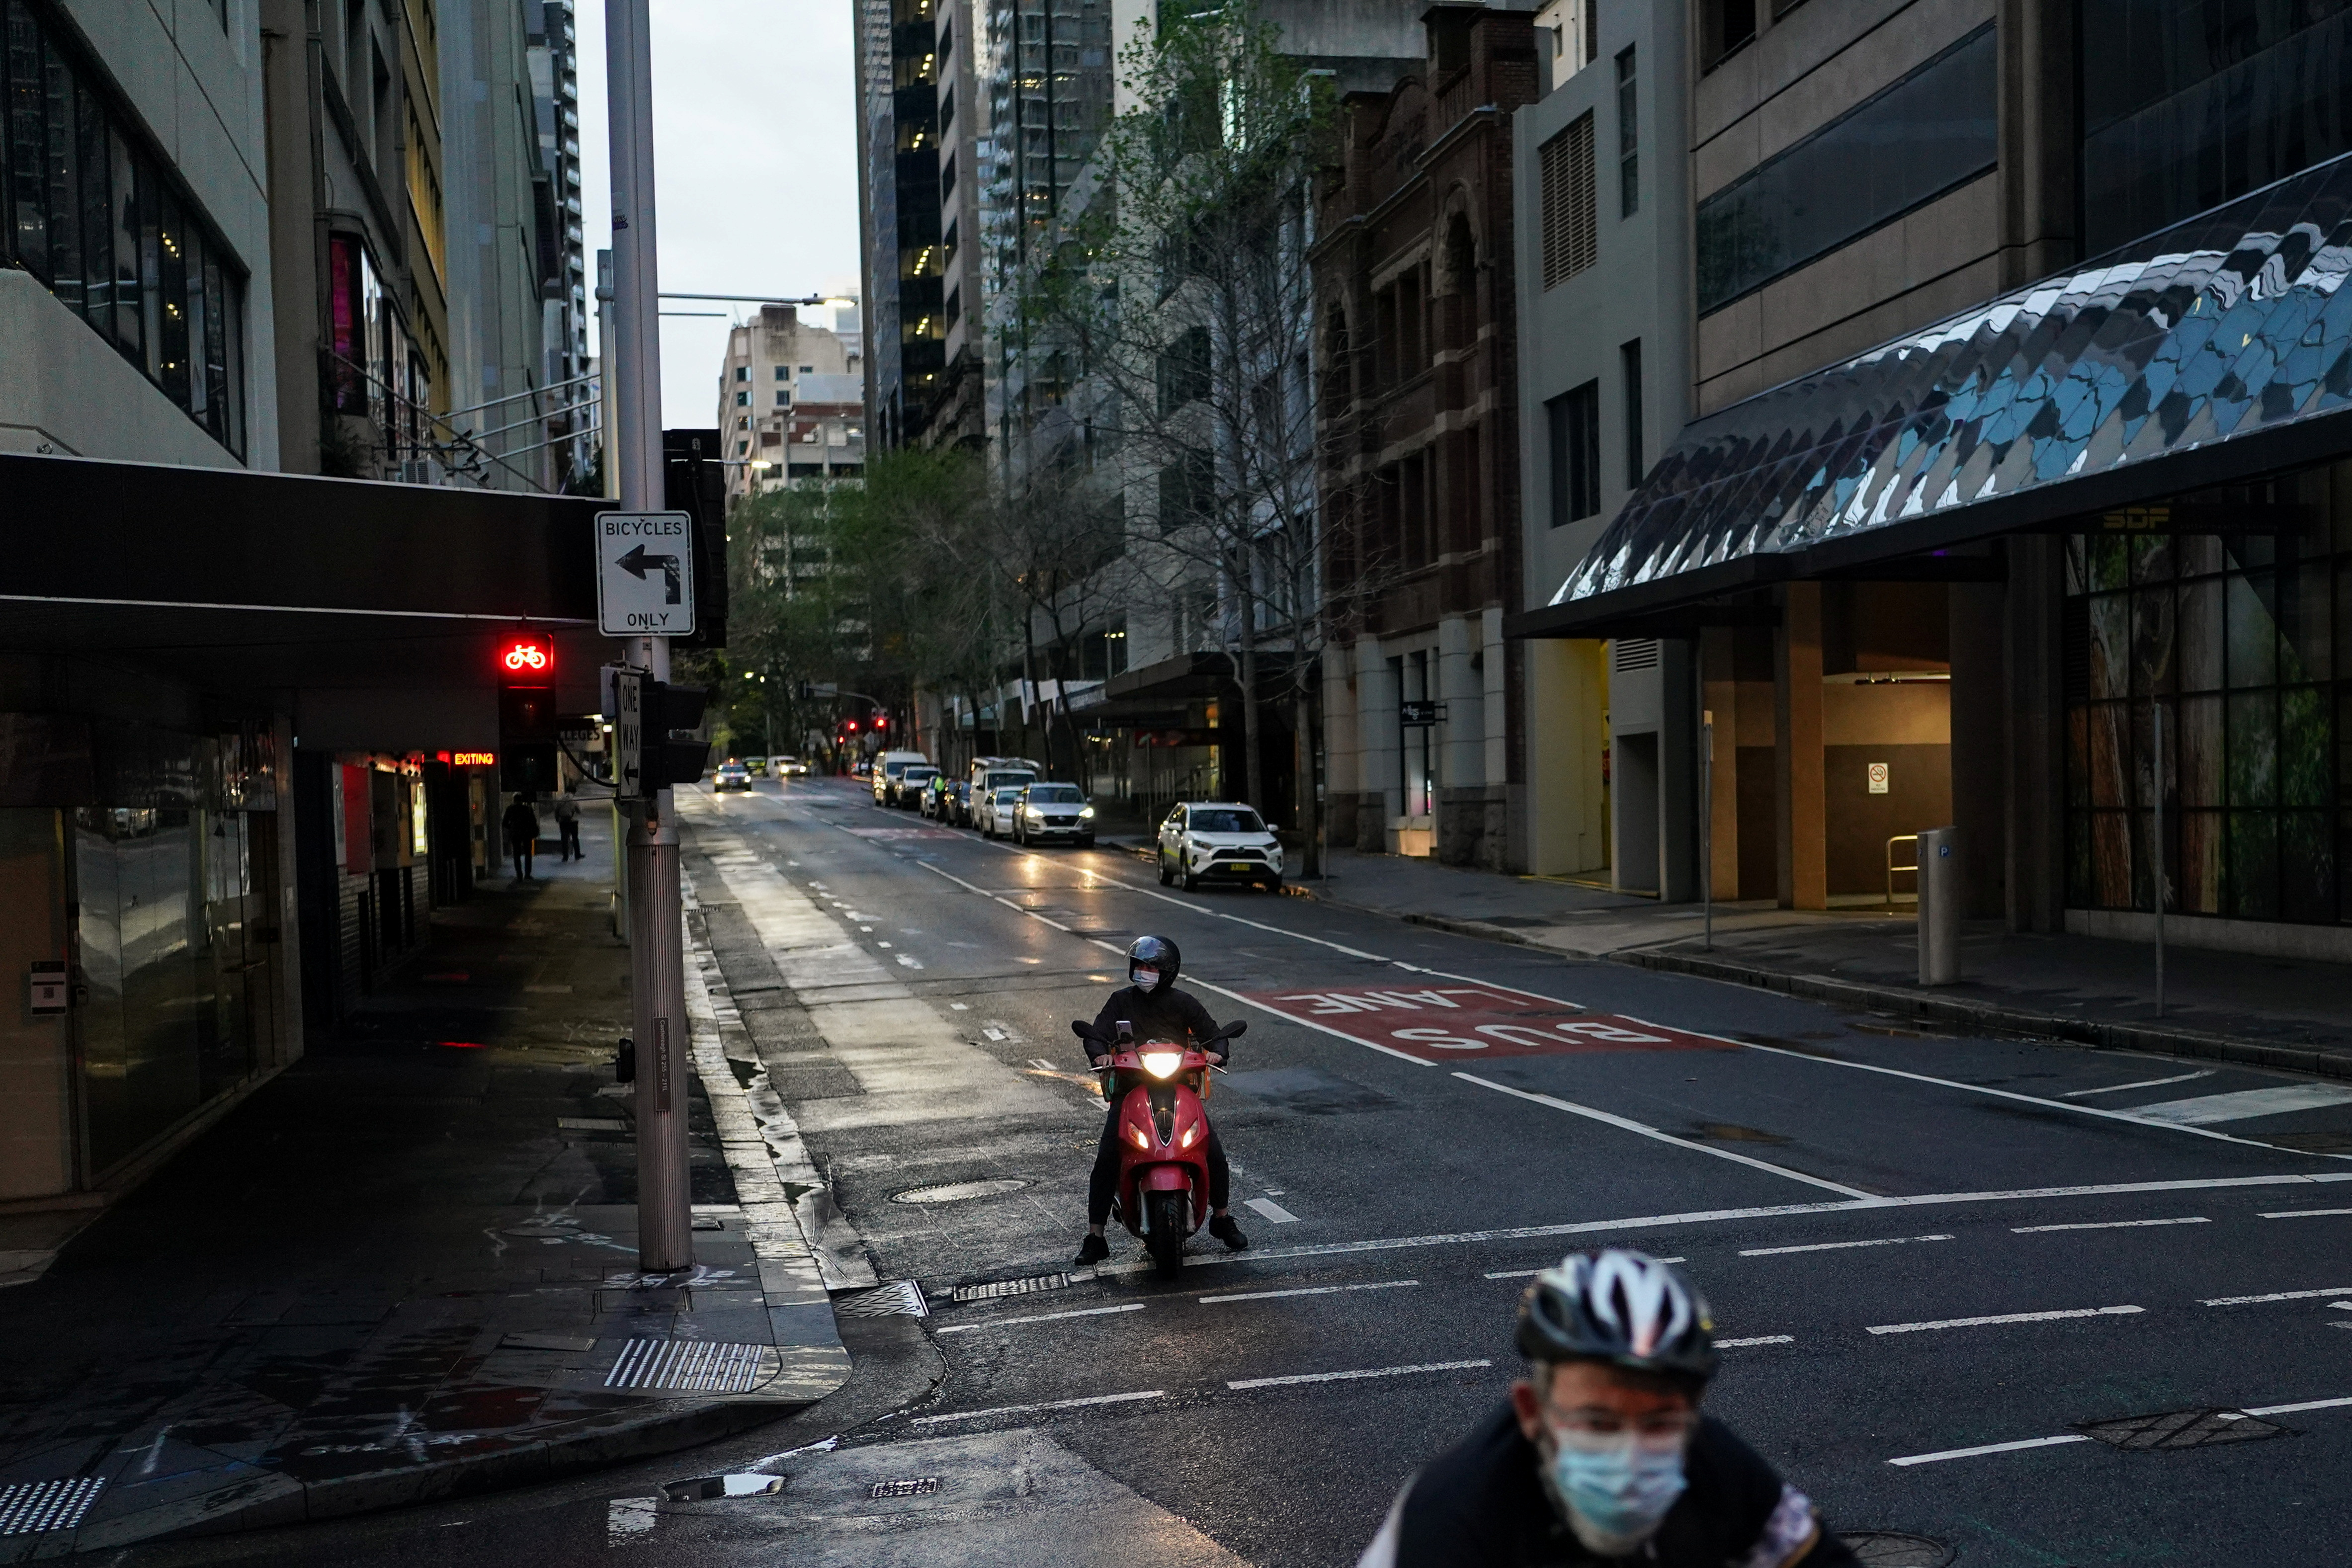 A delivery courier on motorbike and a cyclist, both wear protective face masks, navigates the city centre during a lockdown to curb the spread of a coronavirus disease (COVID-19) outbreak in Sydney, Australia, September 14, 2021.  REUTERS/Loren Elliott